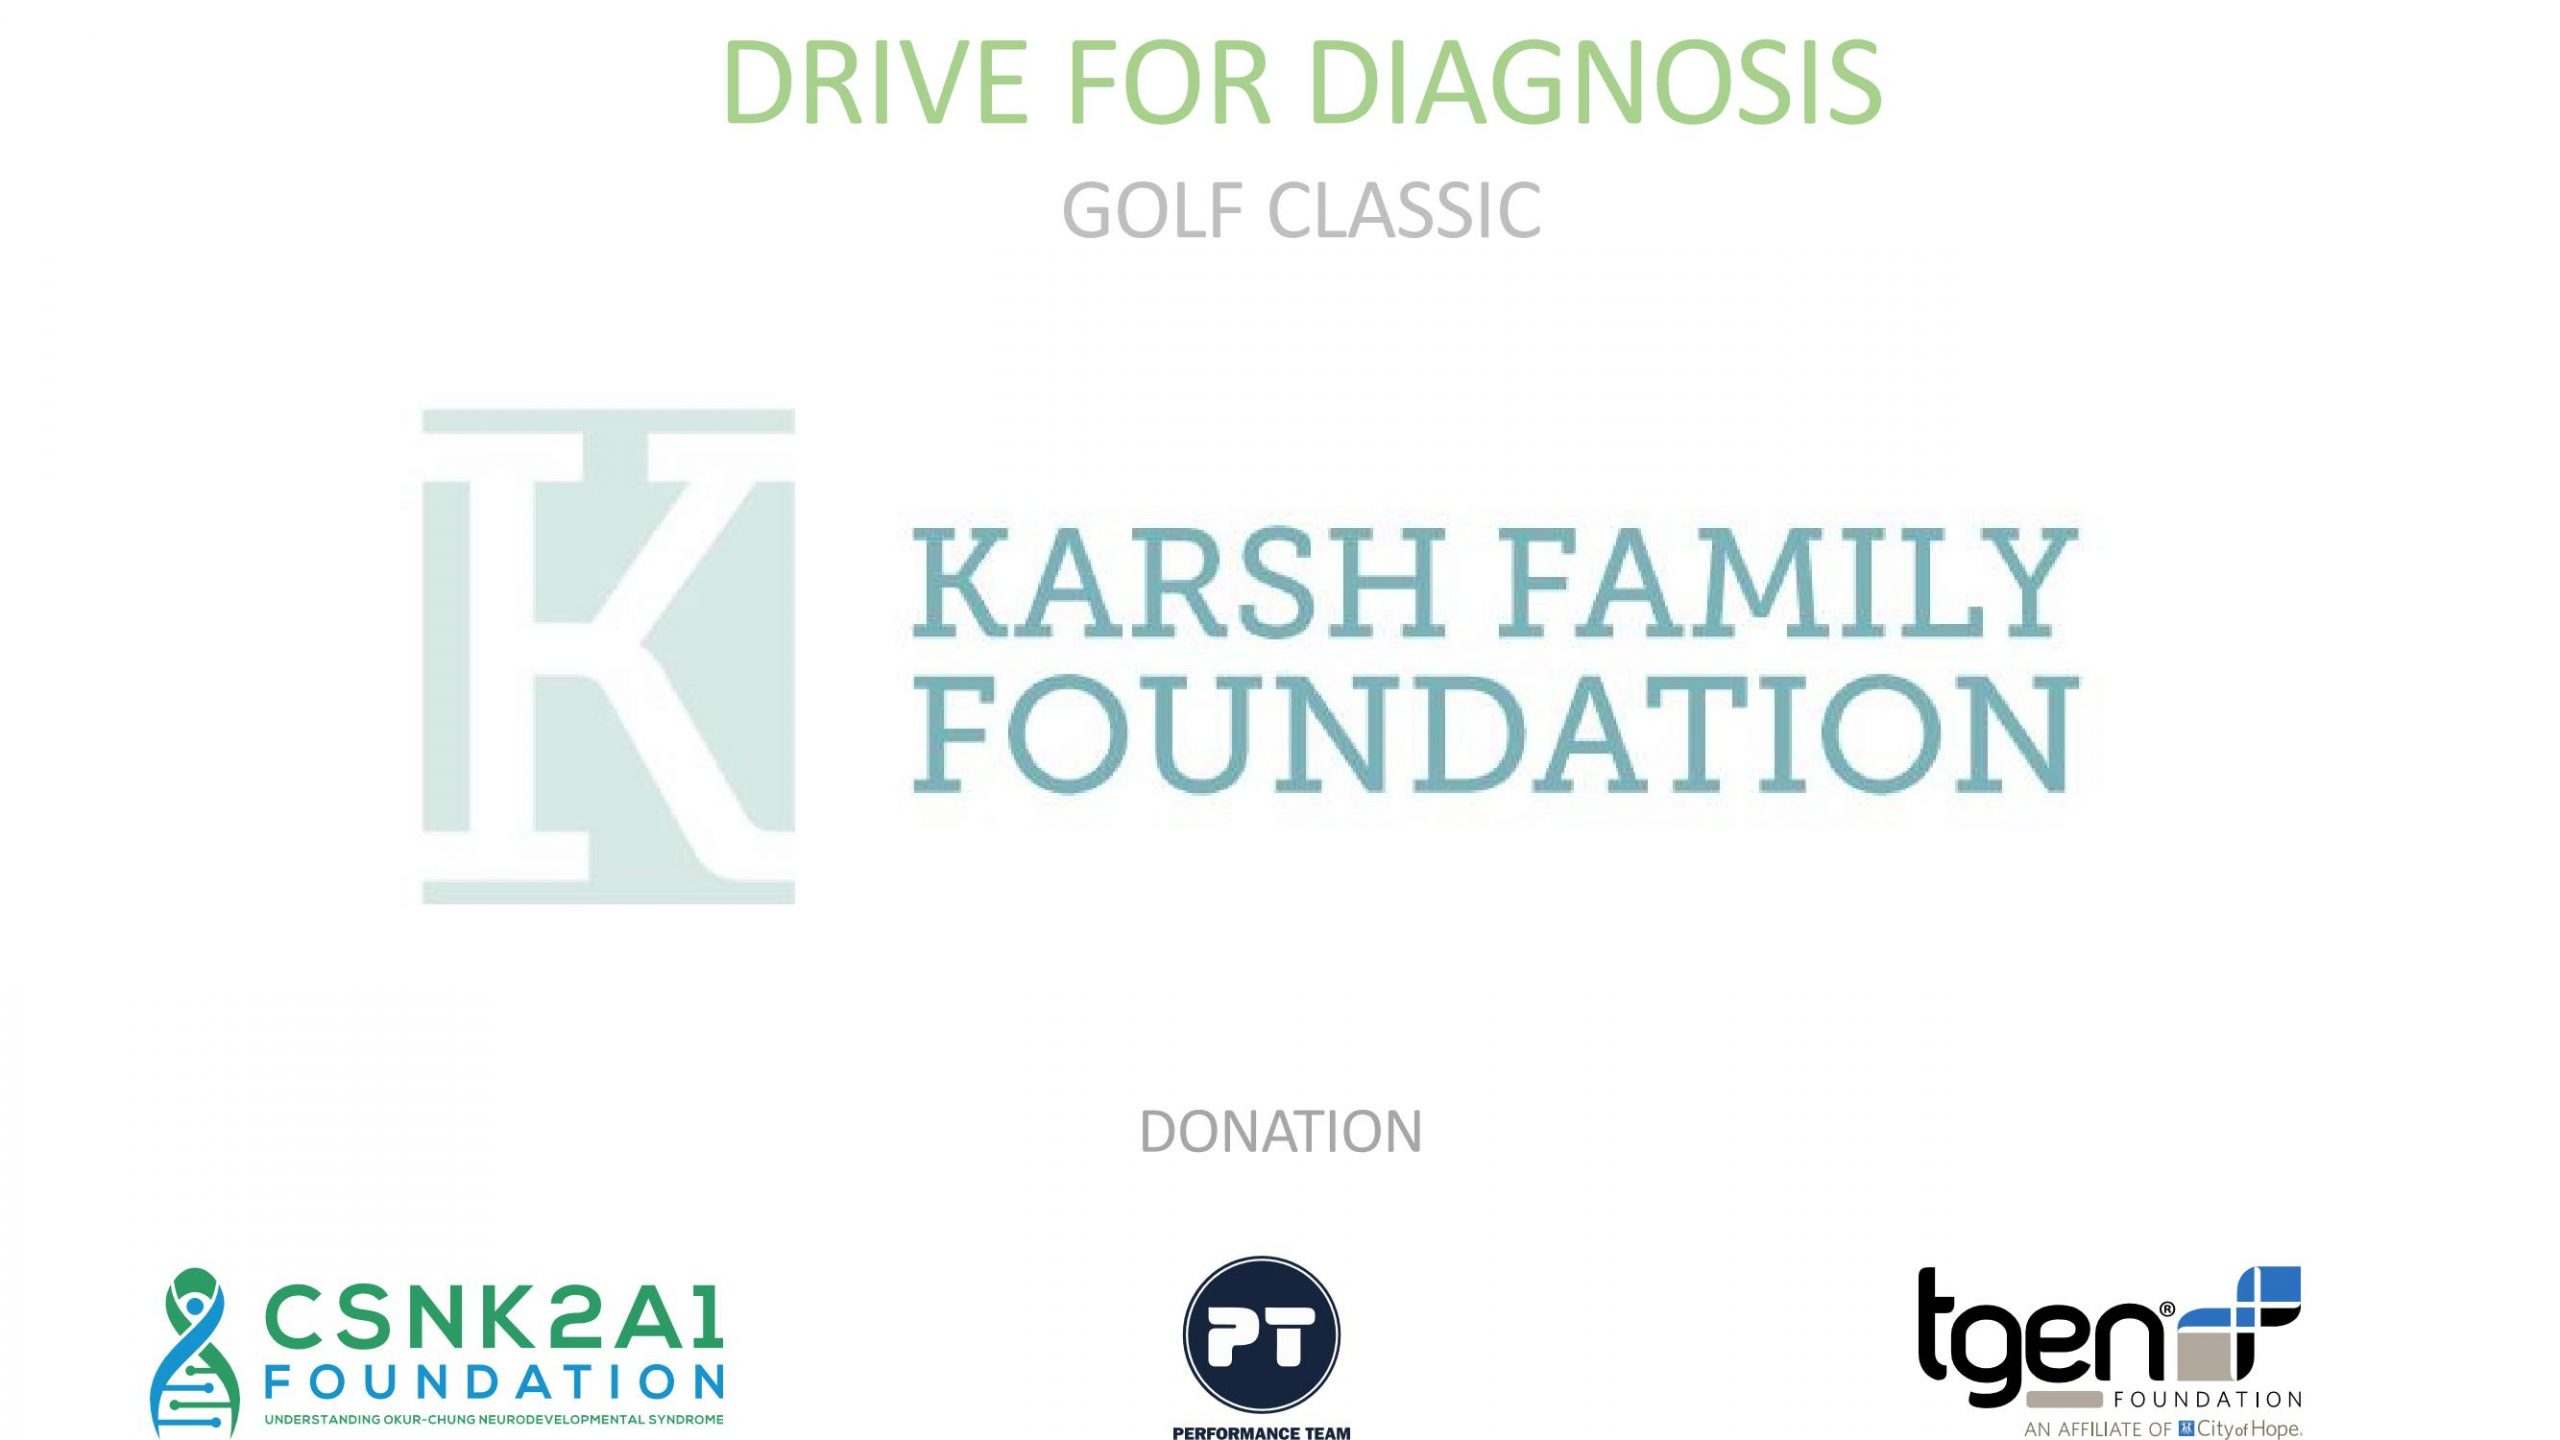 Karsh Family Foundation